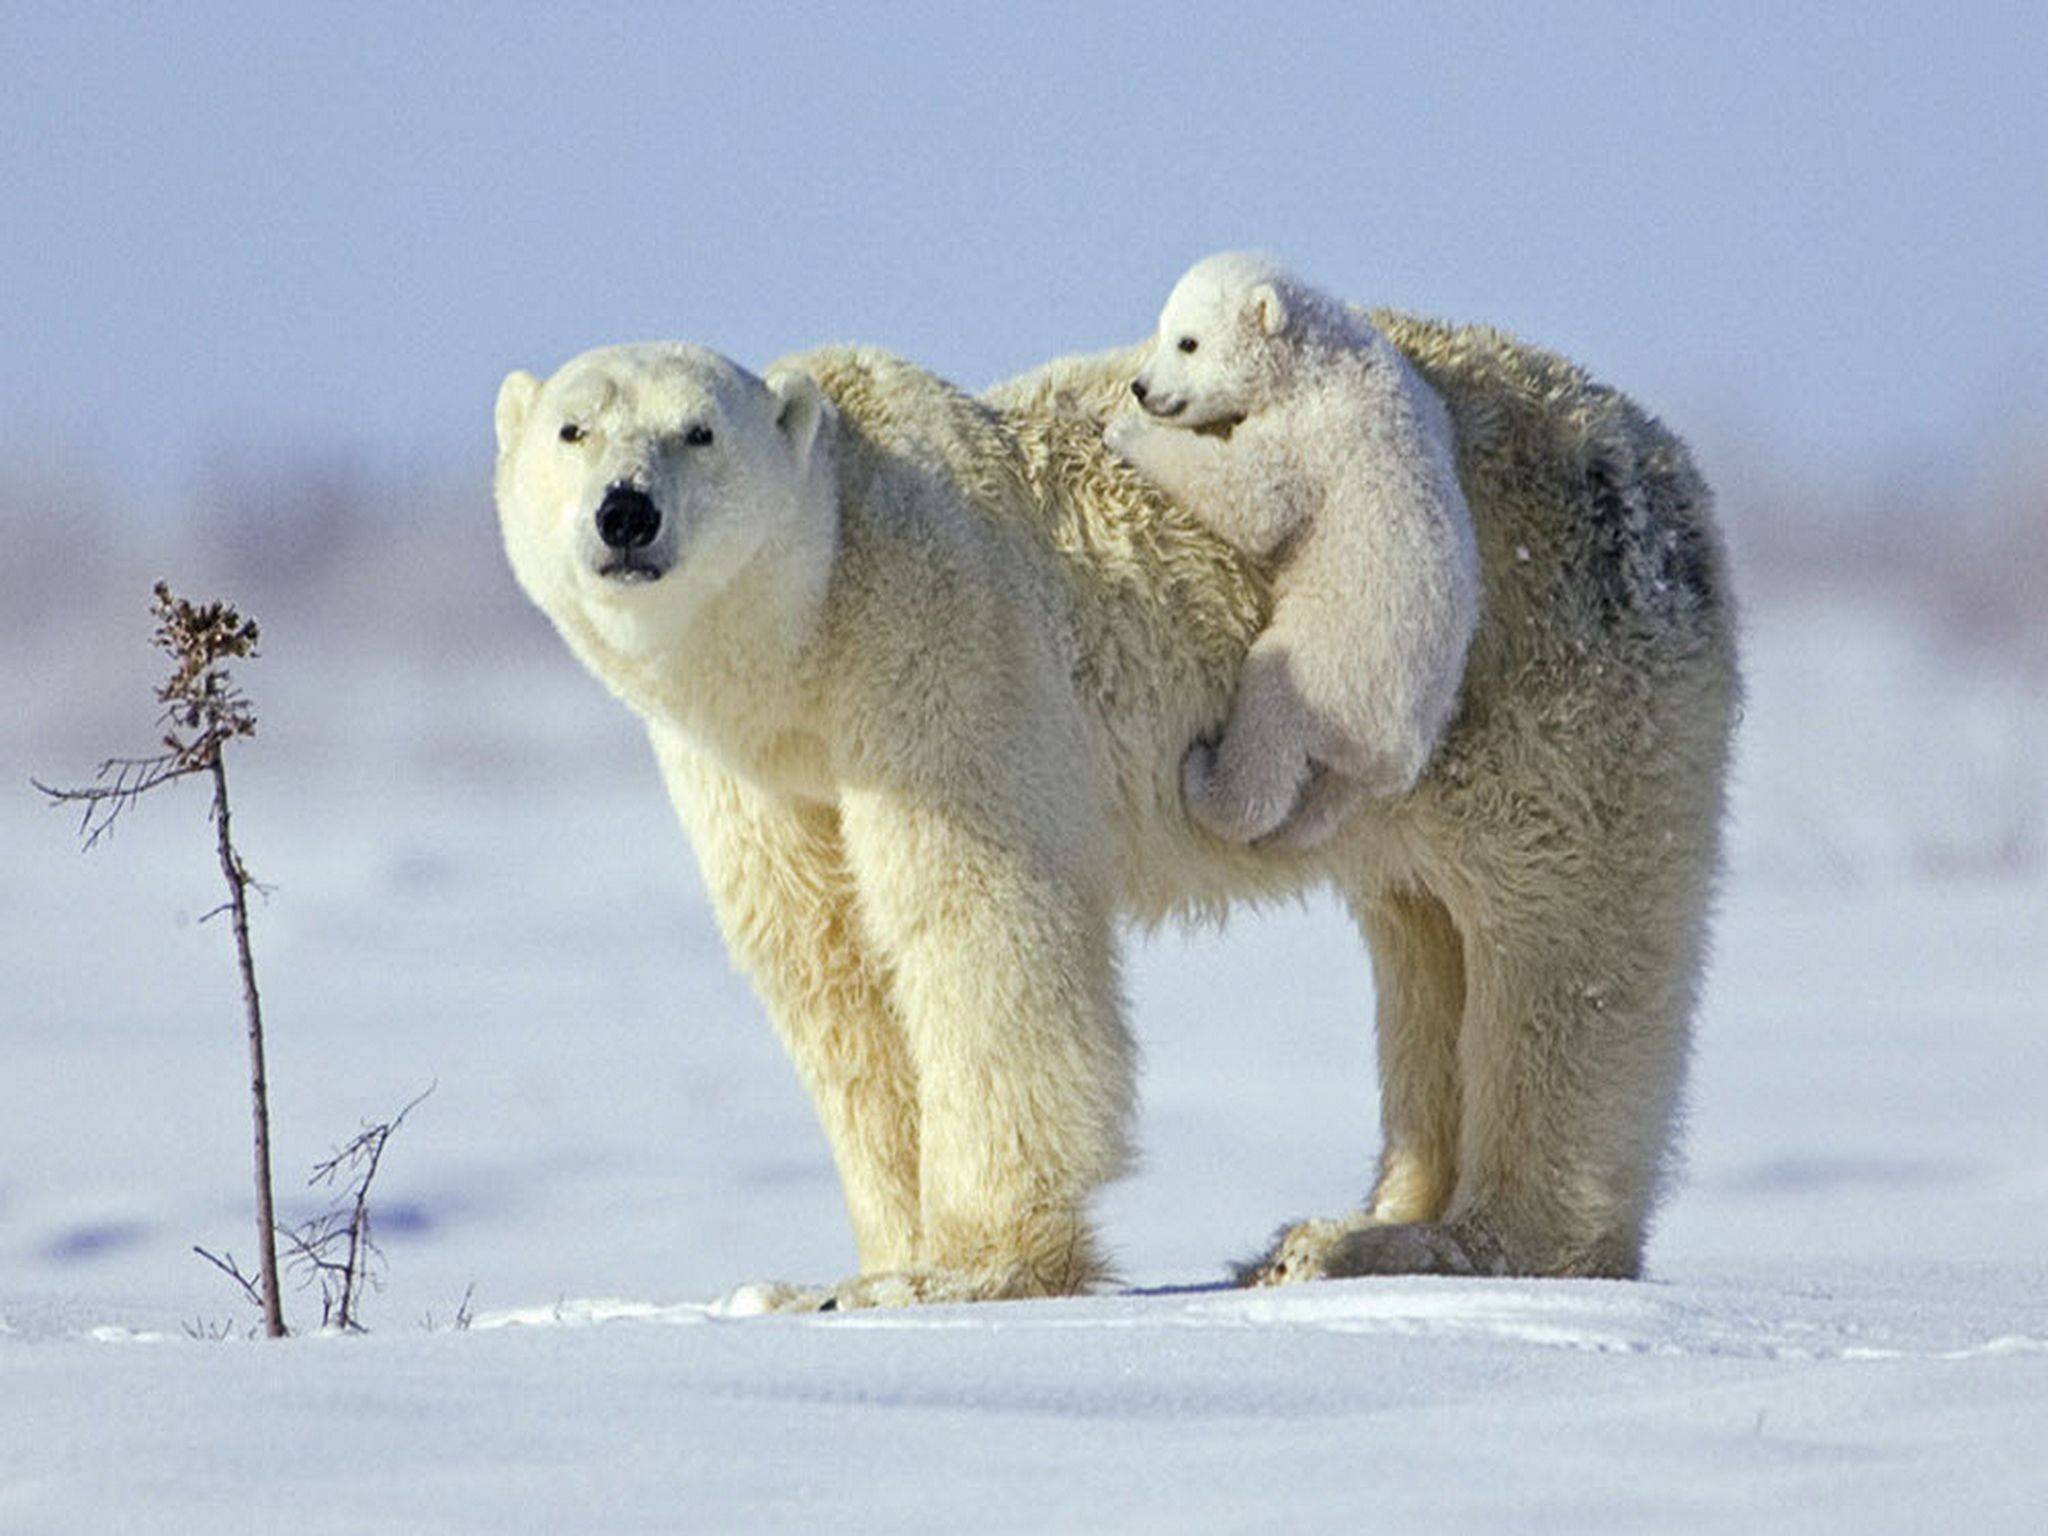 Animals Hd Wallpapers 2015 Funny Kissing Hugging Baby: Polar Bear Wallpaper Picture